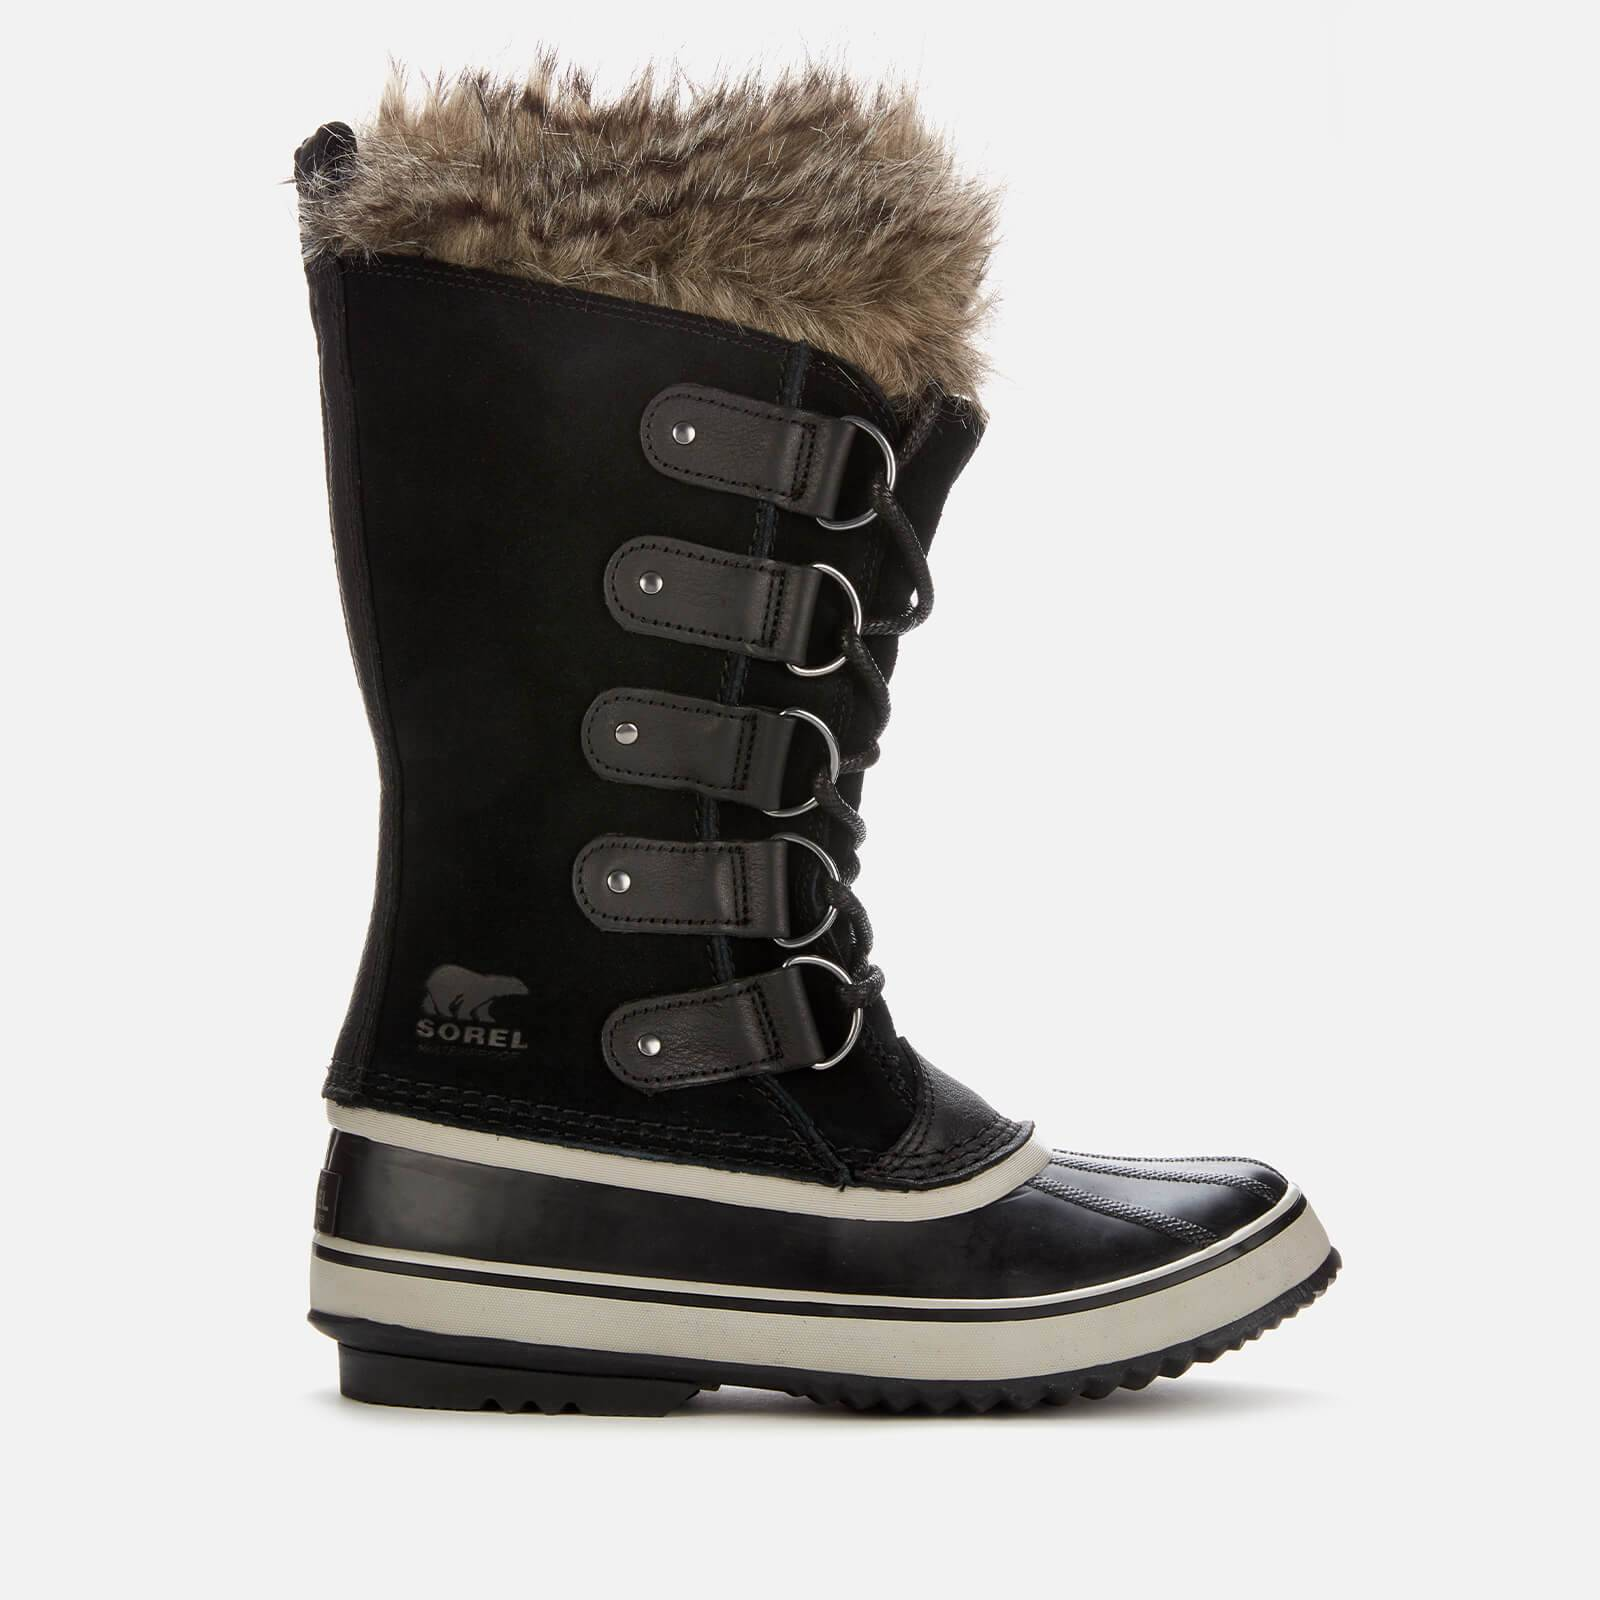 Sorel Women's Joan Of Arctic Waterproof Suede Knee High Winter Boots - Black/Quarry - UK 7